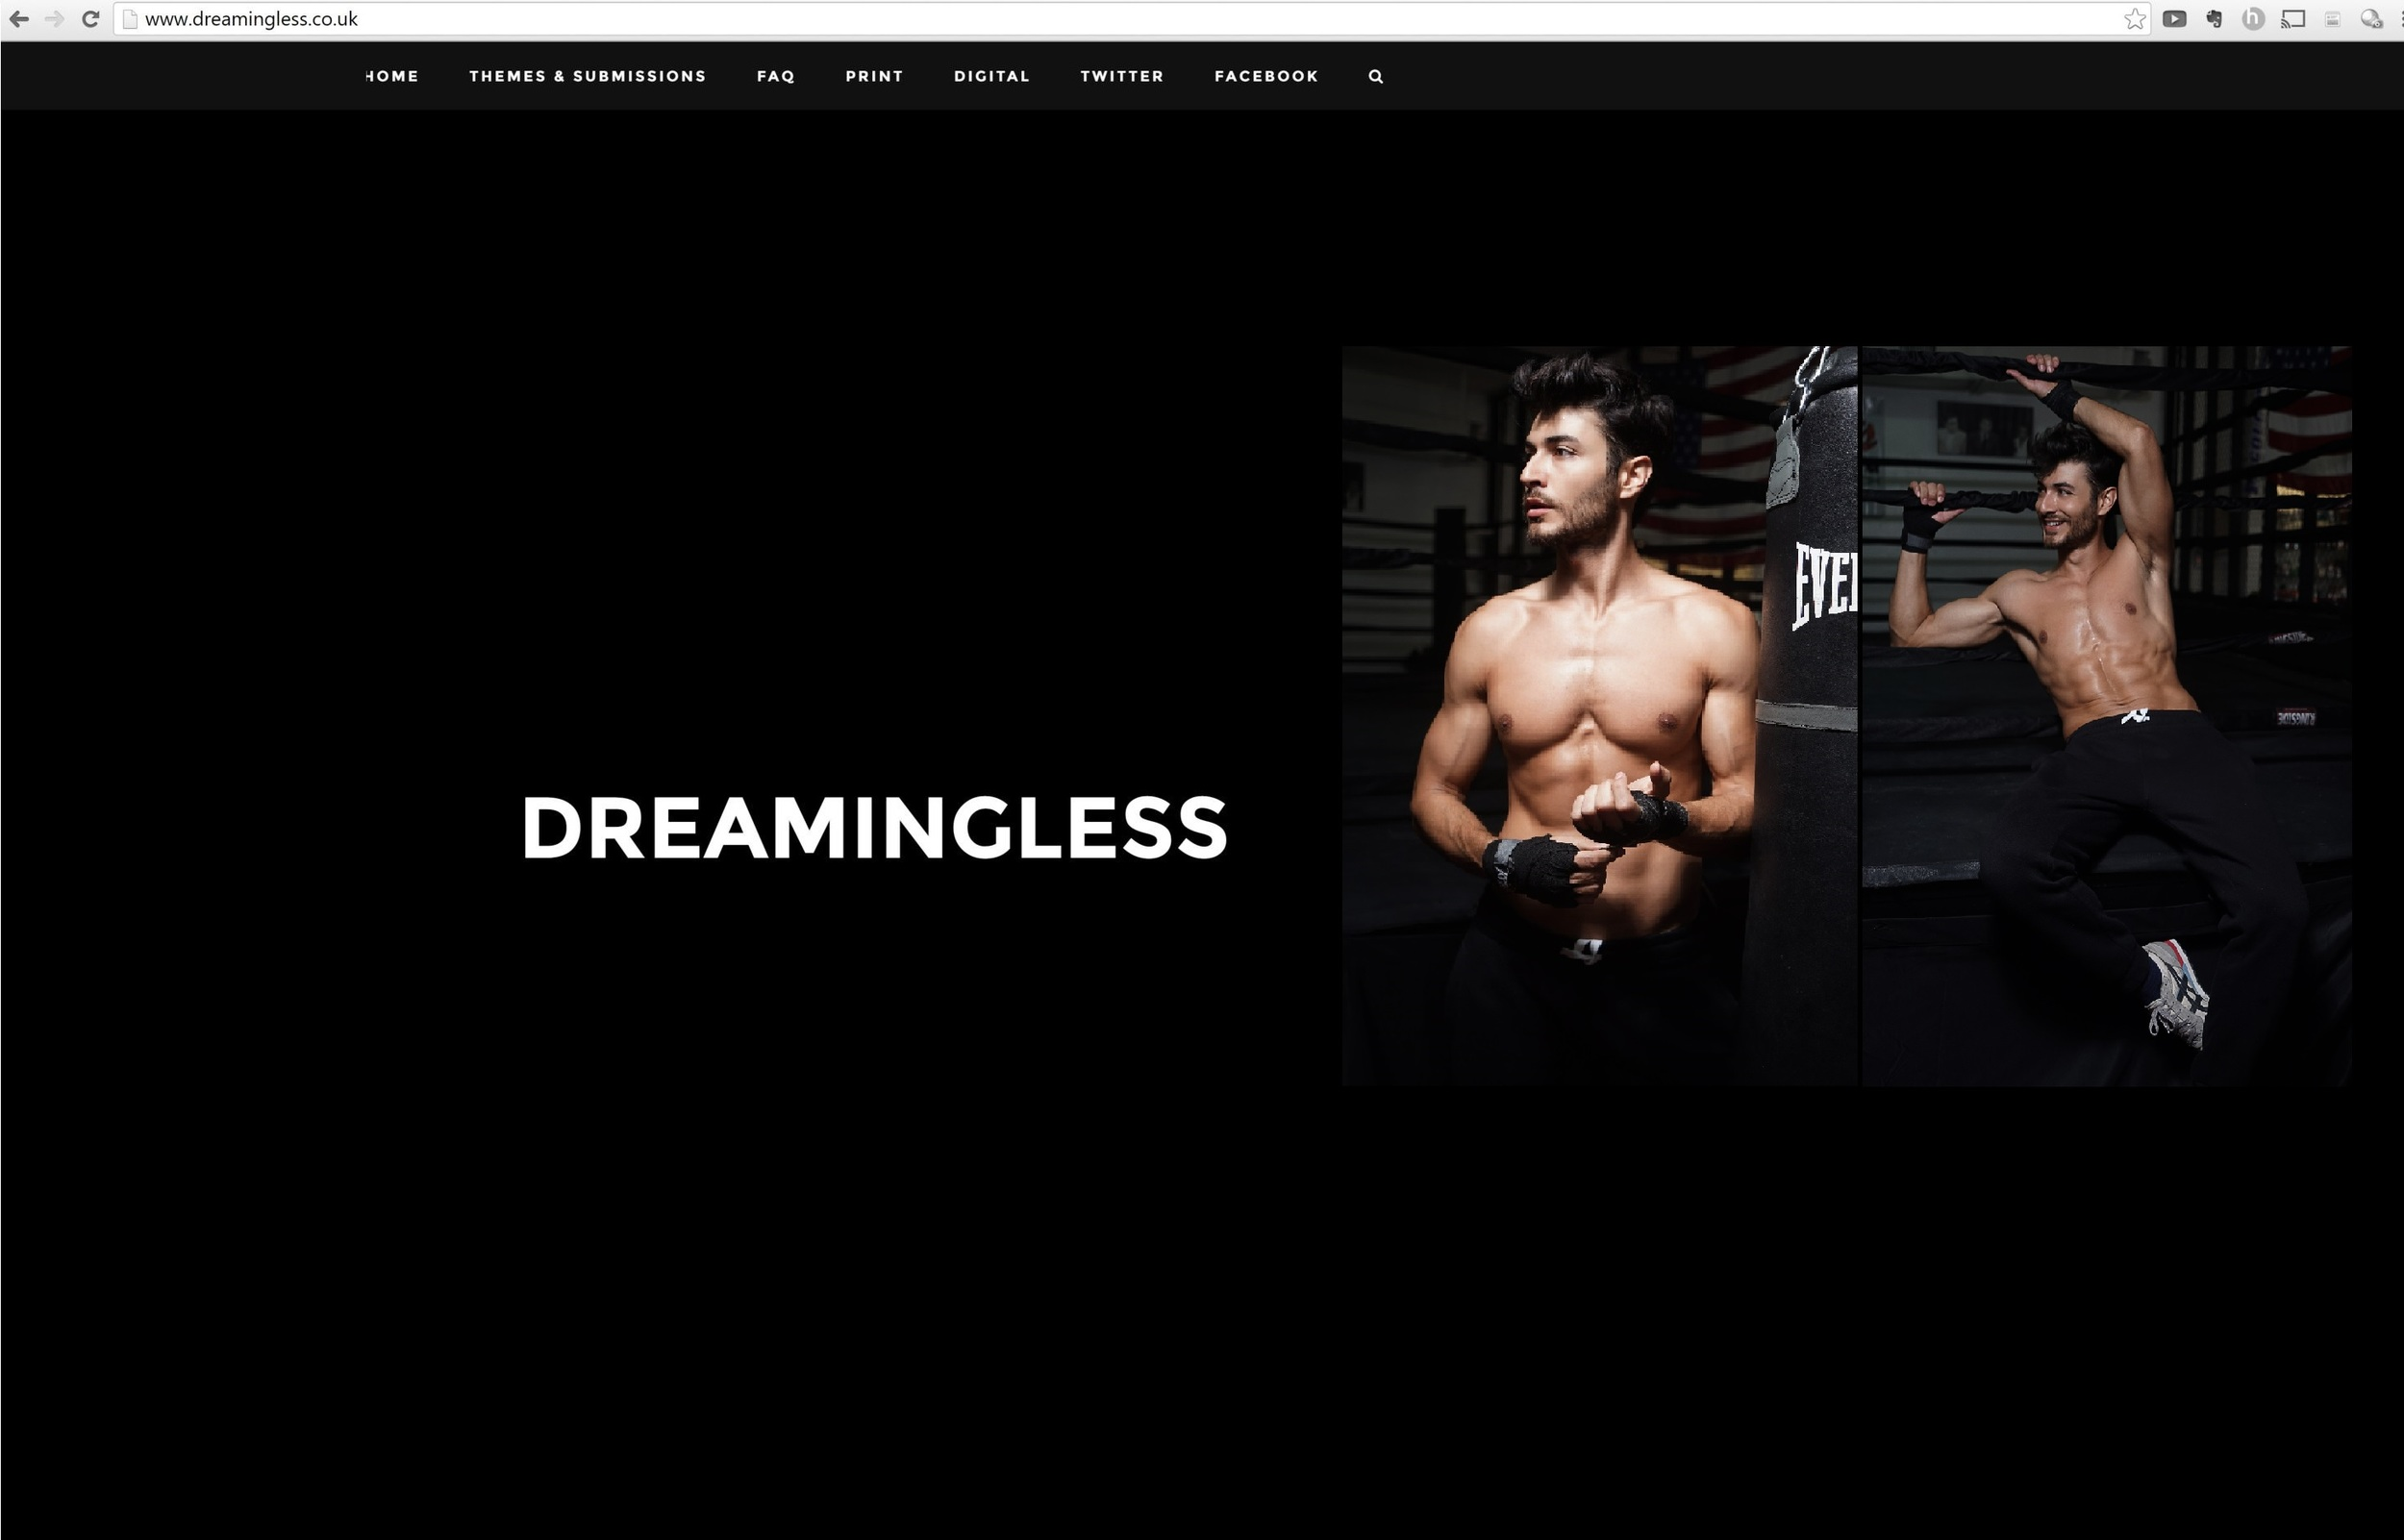 Dreamingless UK Print Website Screen Grab.JPG